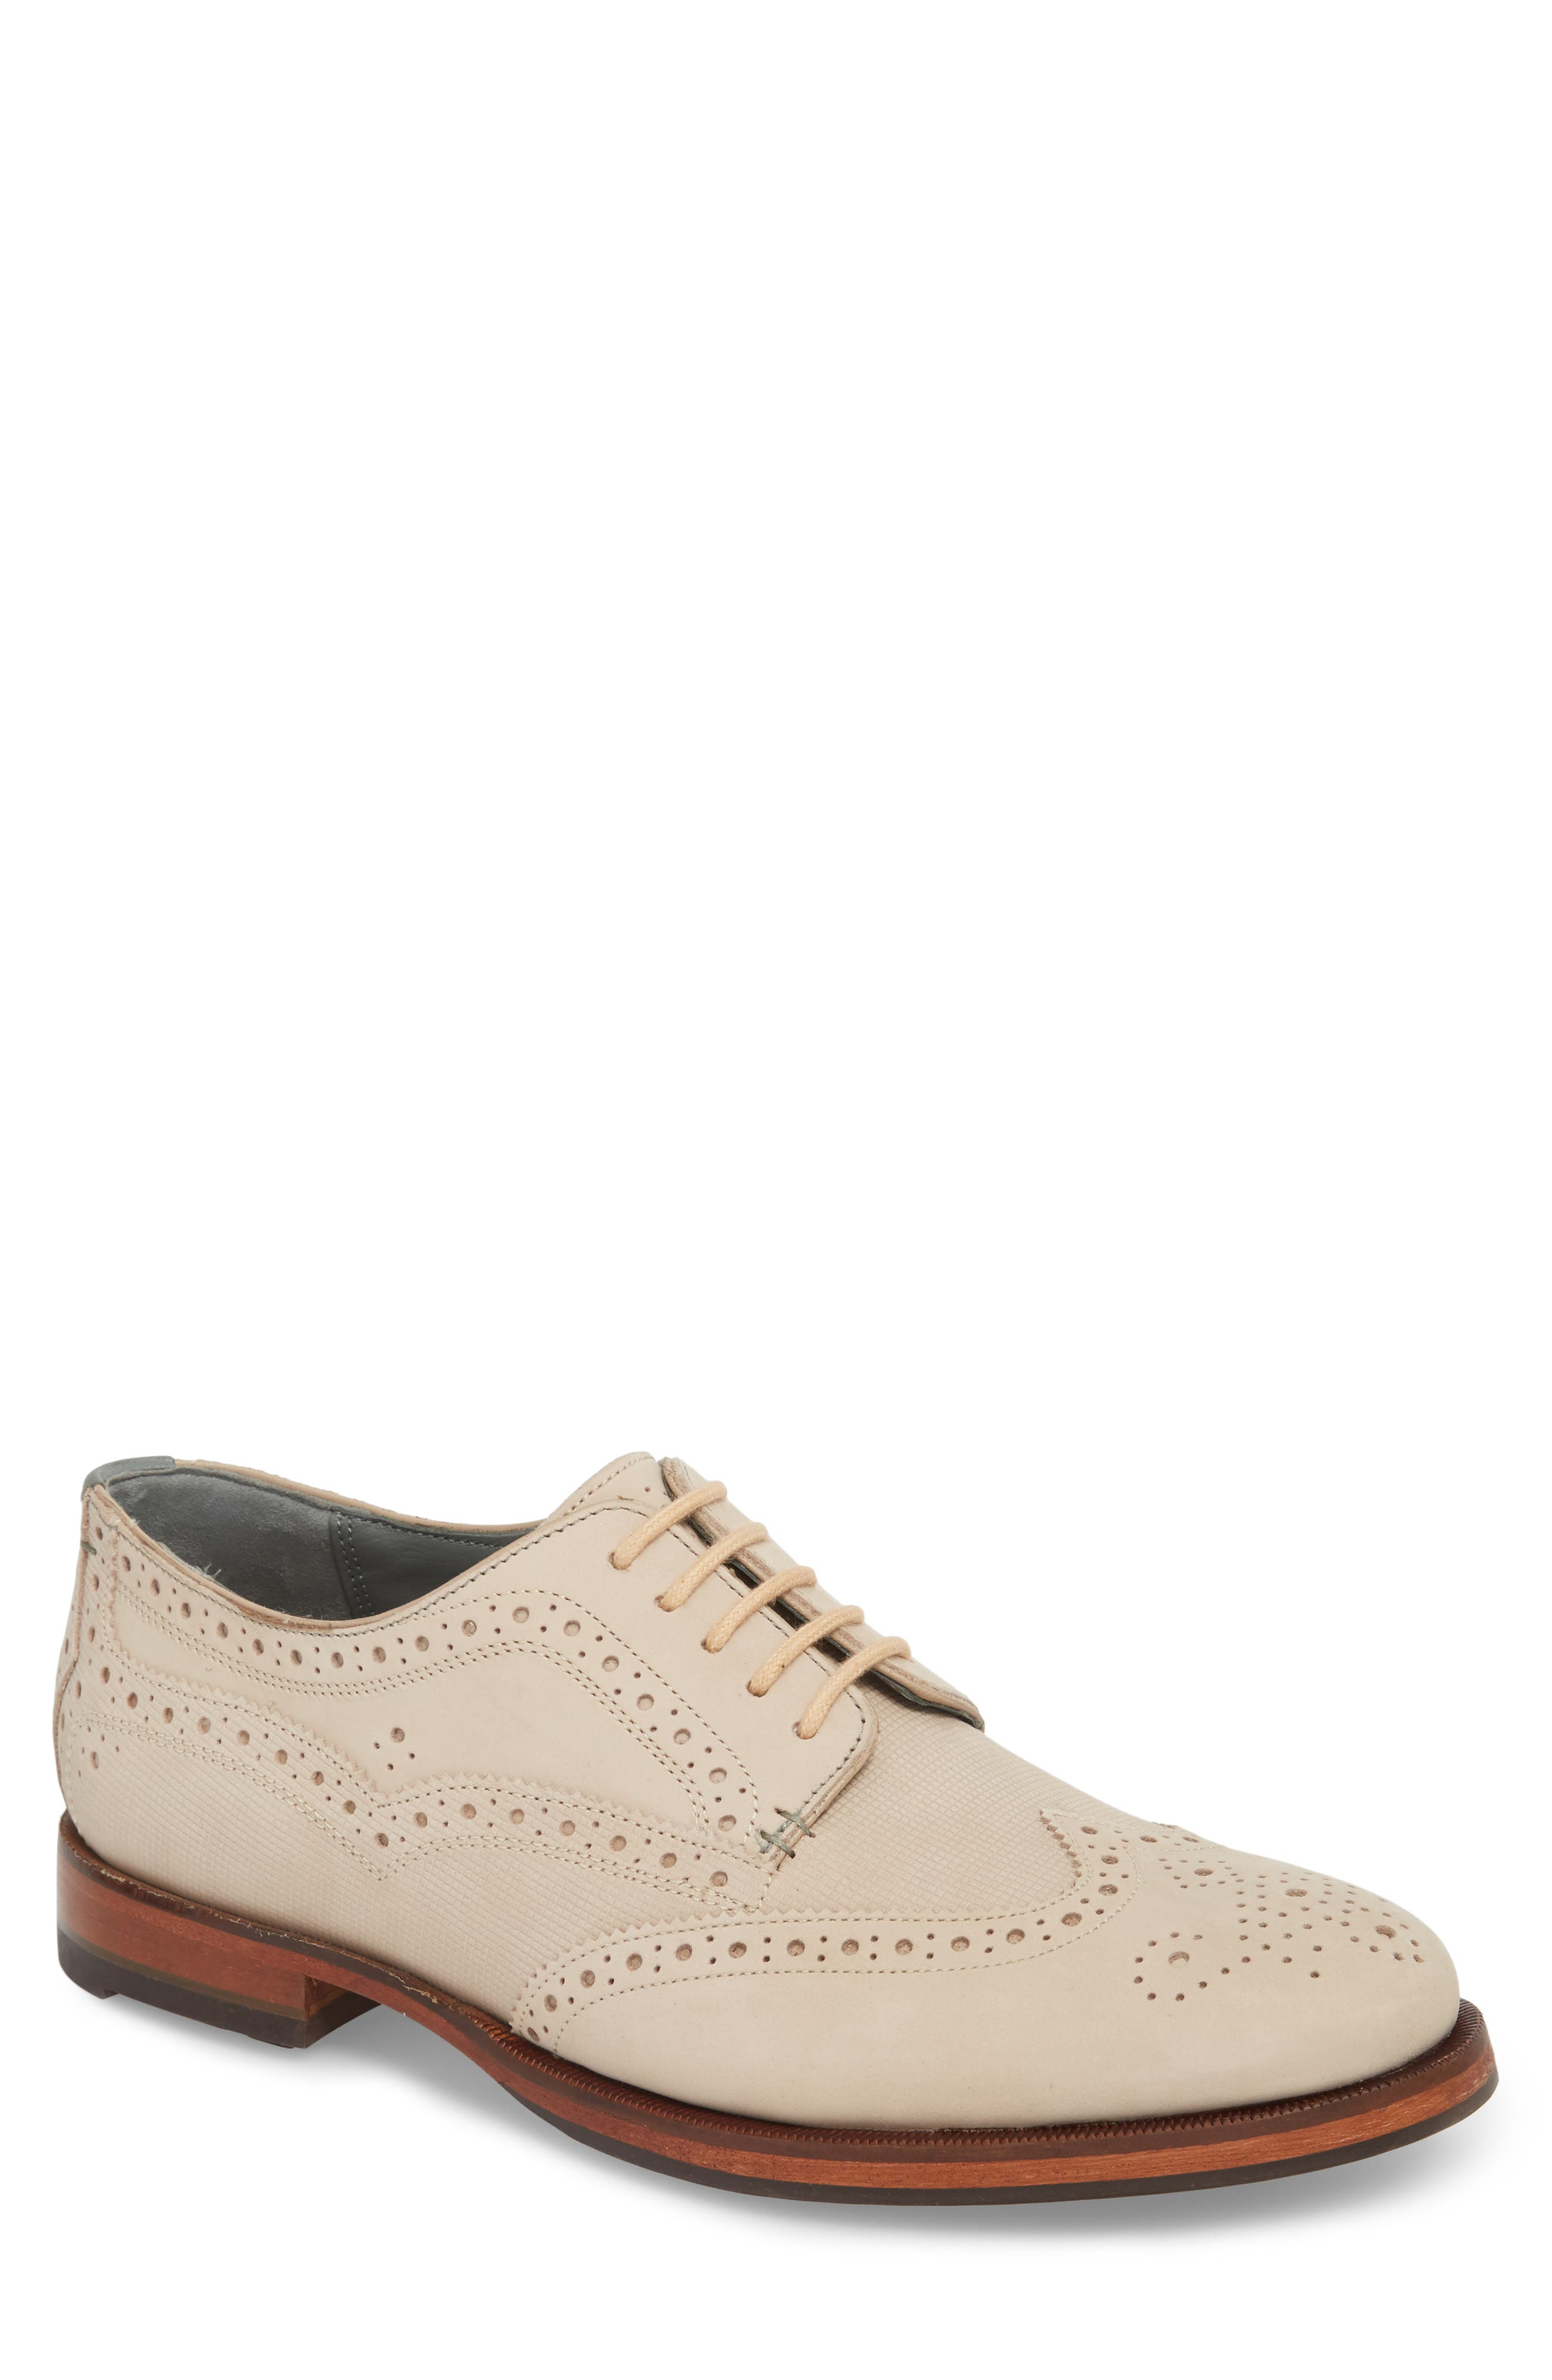 Senapen Wingtip Derby,                         Main,                         color, LIGHT TAN SUEDE